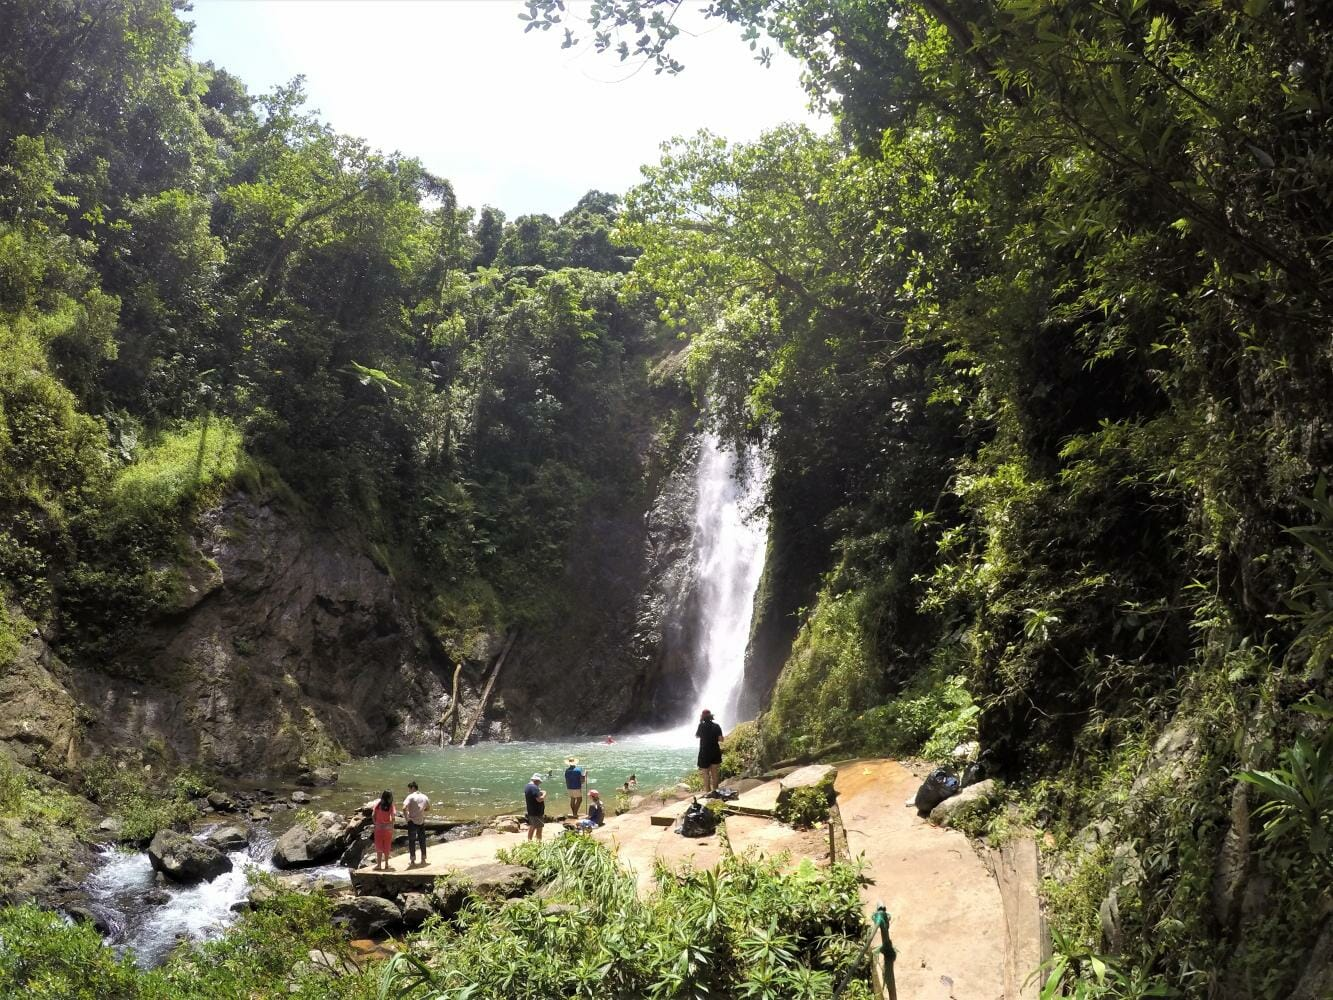 First view of the biggest waterfall on the Navua River on the Jewel of Fiji tour in Fiji